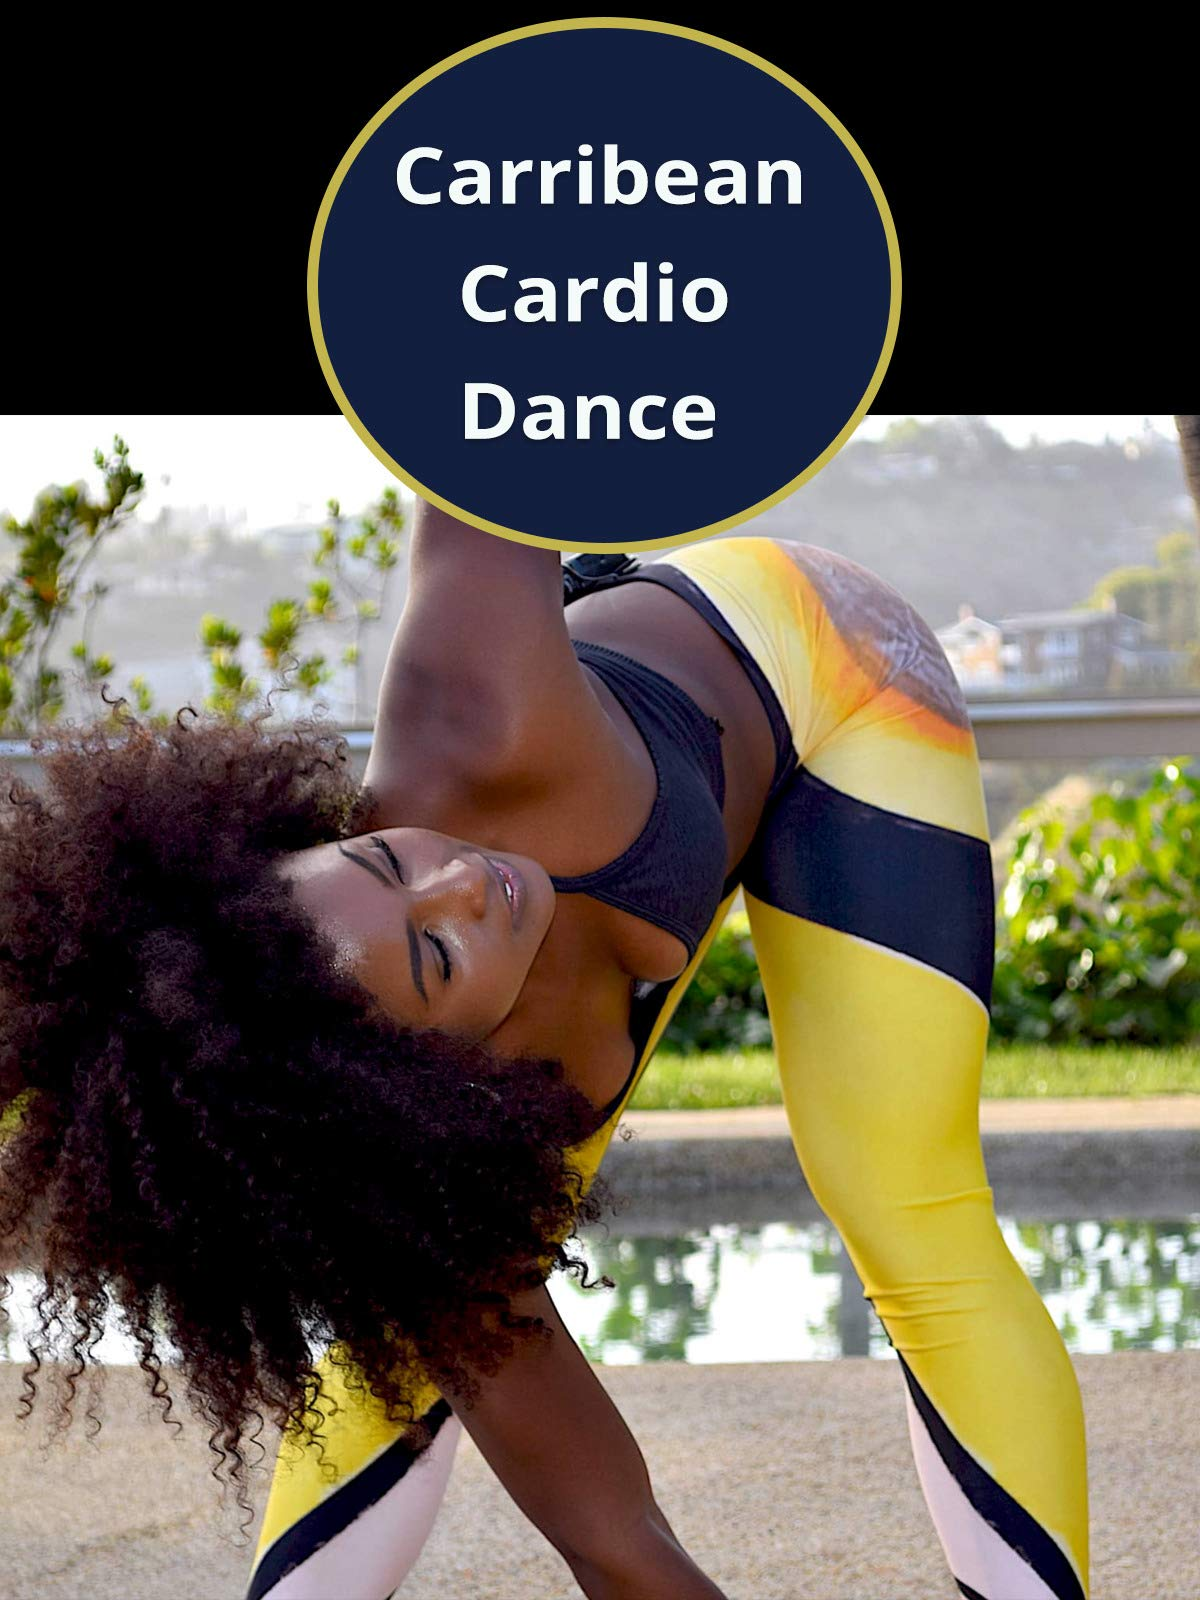 Carribean Cardio Dance